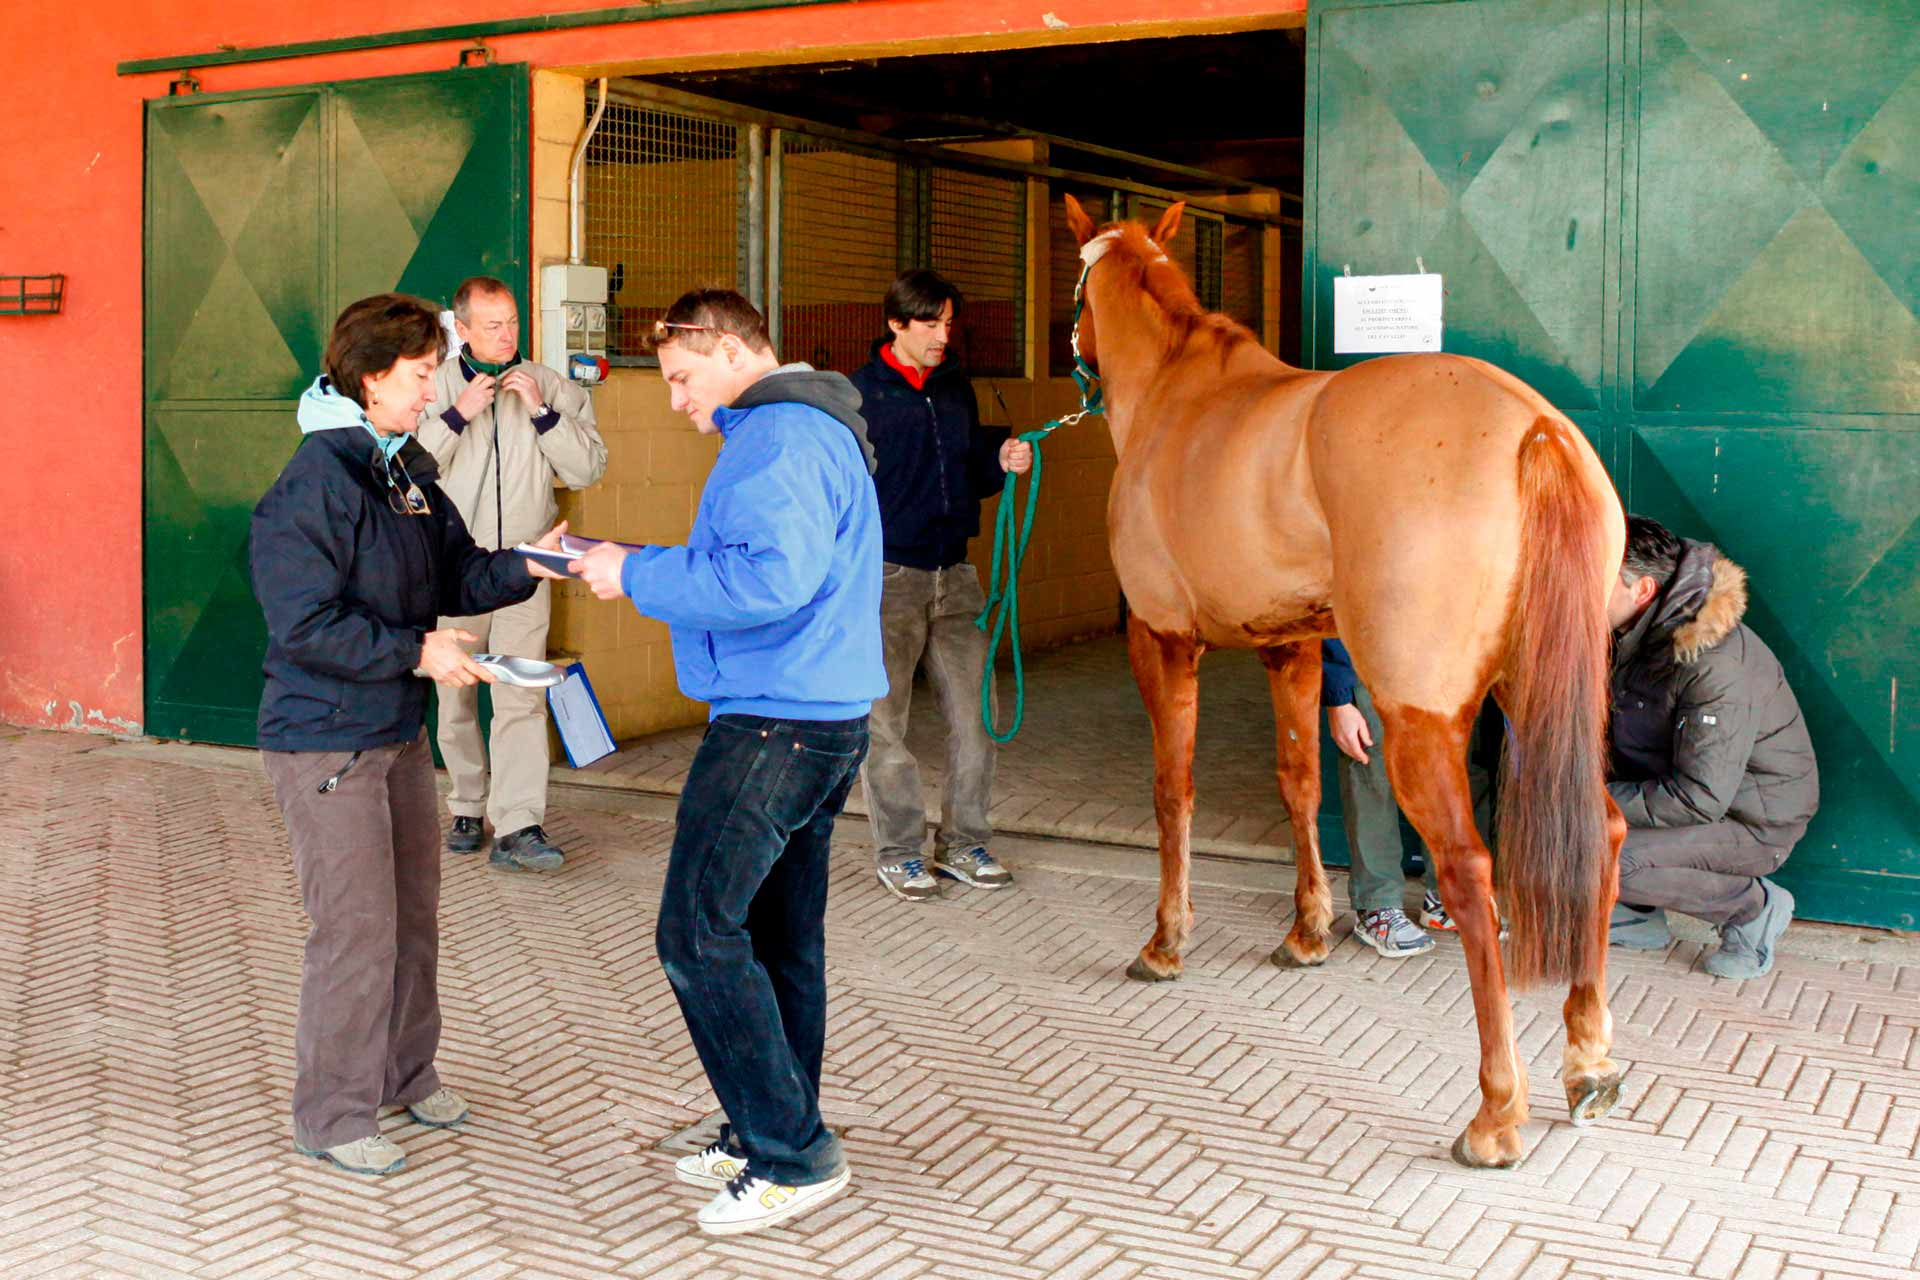 """VETERINARY PRE-EXAMINATIONS - The journey alongside the Barbaresco Iorzy begins one morning in February, in the veterinary clinic where the horse predictions are carried out, as required by the equine protocol. The horses admitted to the forecasts must be half-breeds of various origins, """"mestizos"""" with a percentage of English blood not exceeding 75%."""